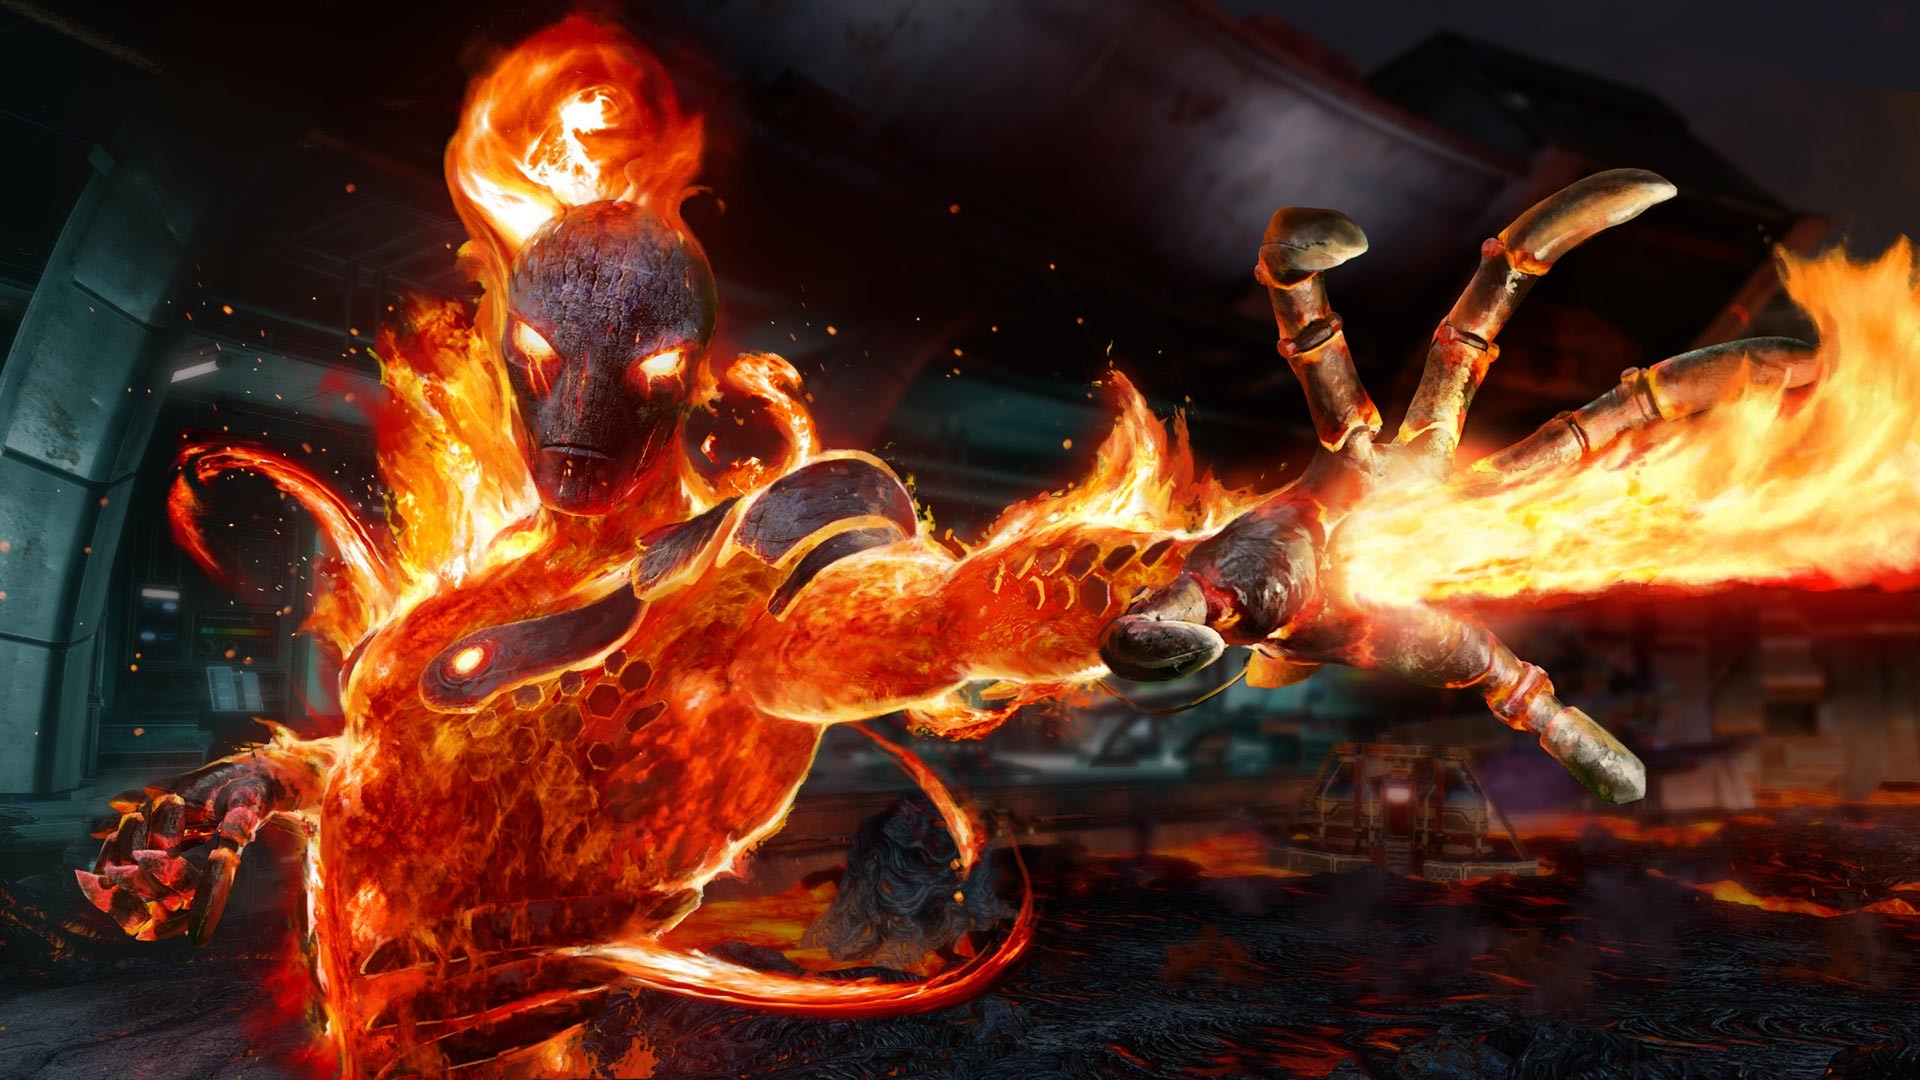 Featuring characters like Sabrewulf, Cinder, Sadira, Spinal, Hisako, TJ  Combo and several others to make up this killer theme.